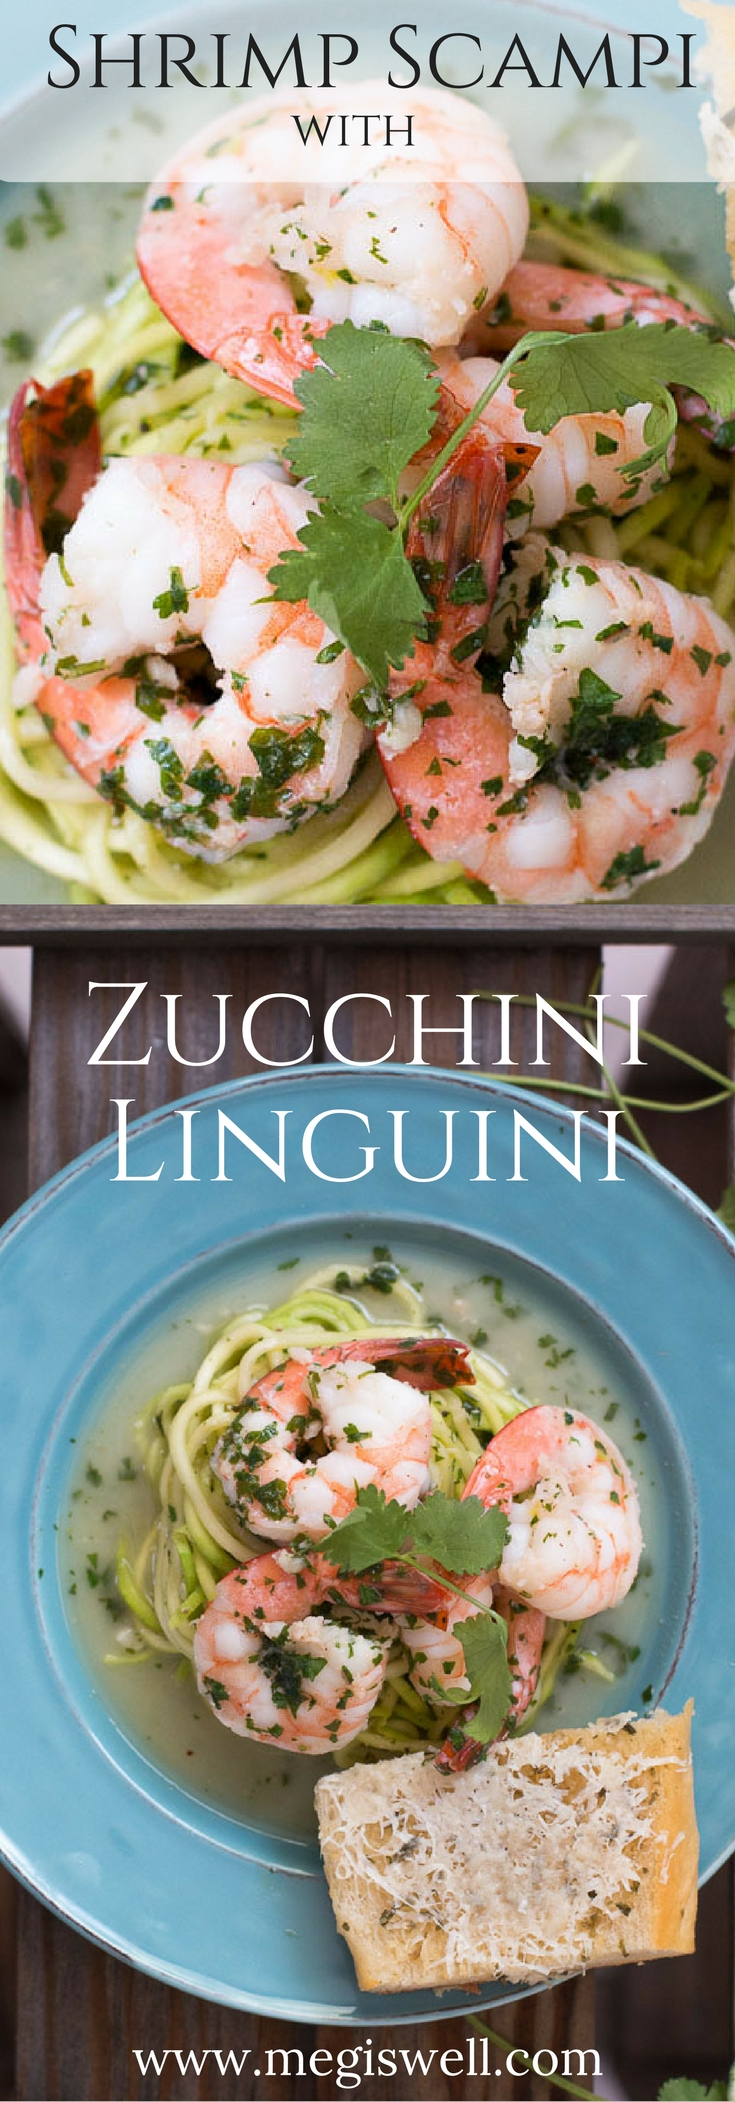 This Shrimp Scampi with Zucchini Linguini is super light and easy but feels fancy. Bursts of cilantro and lime make this a great fresh meal to serve on a hot day with a glass of chilled wine. | www.megiswell.com